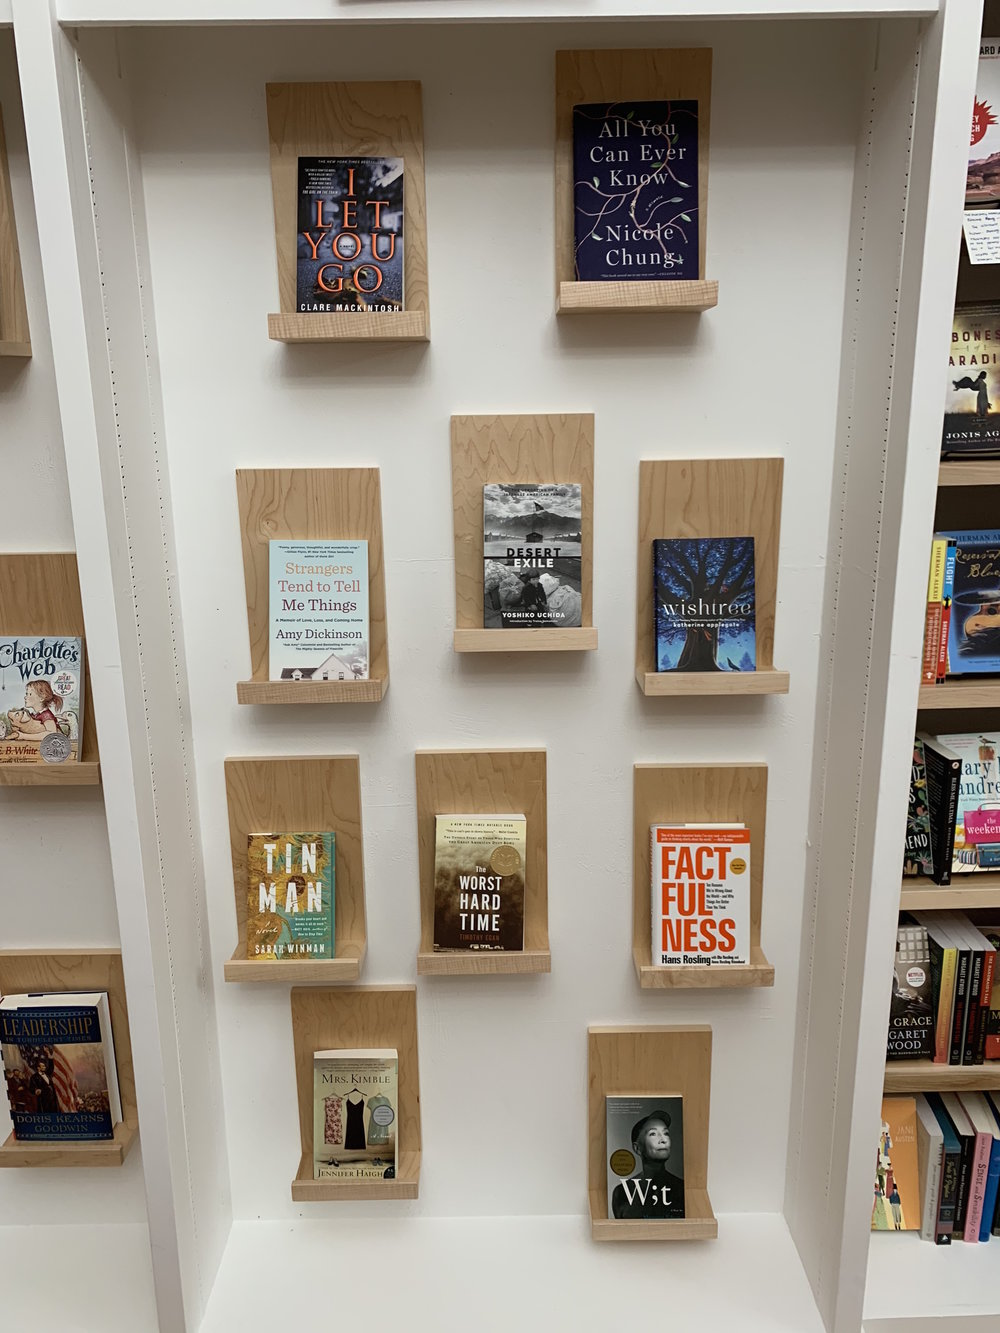 And a few titles that we're recommending for Marsha